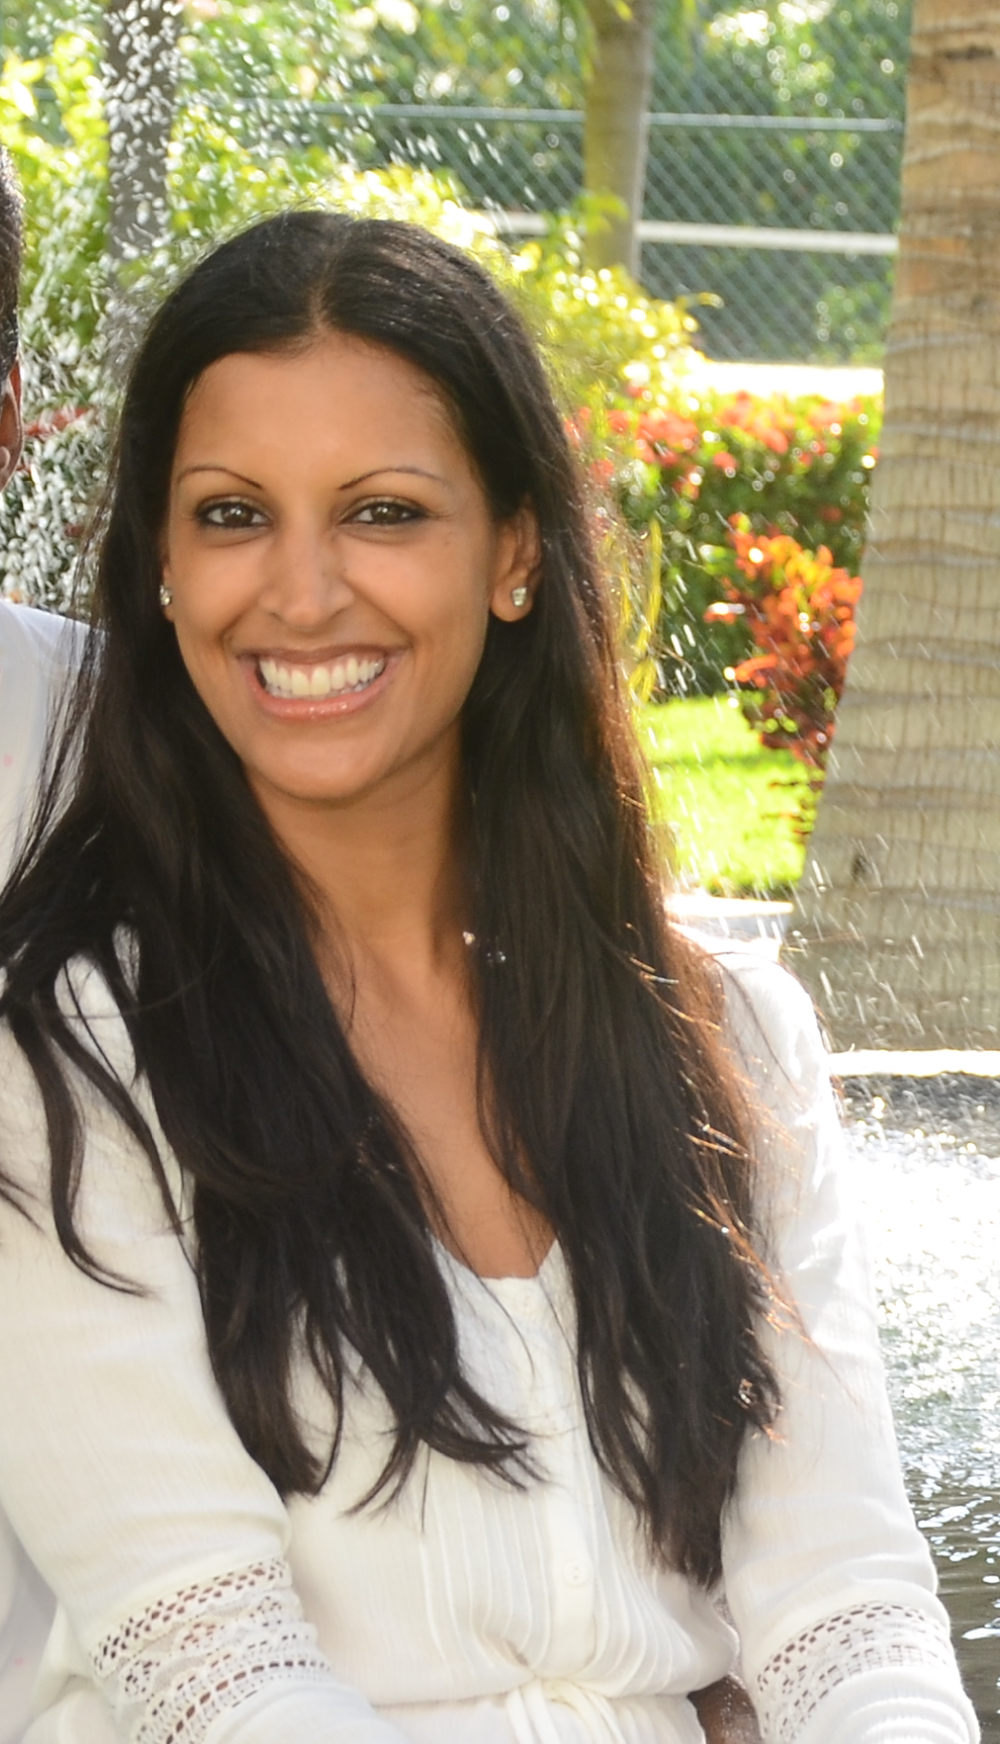 Dr. Pooja  Gupta graduated from Midwestern University in Downers Grove, IL with a doctorate in physical therapy.  Her speciality as a physical therapist has been in orthopedic medicine and sports-related injuries.  Currently, Pooja is at home with her daughter (4) and son (2) and enjoys volunteering at the South Bay Adult School, the South Bay Indian Association and Pratham, a non-profit organization working to educated children in India to escape the poverty system.